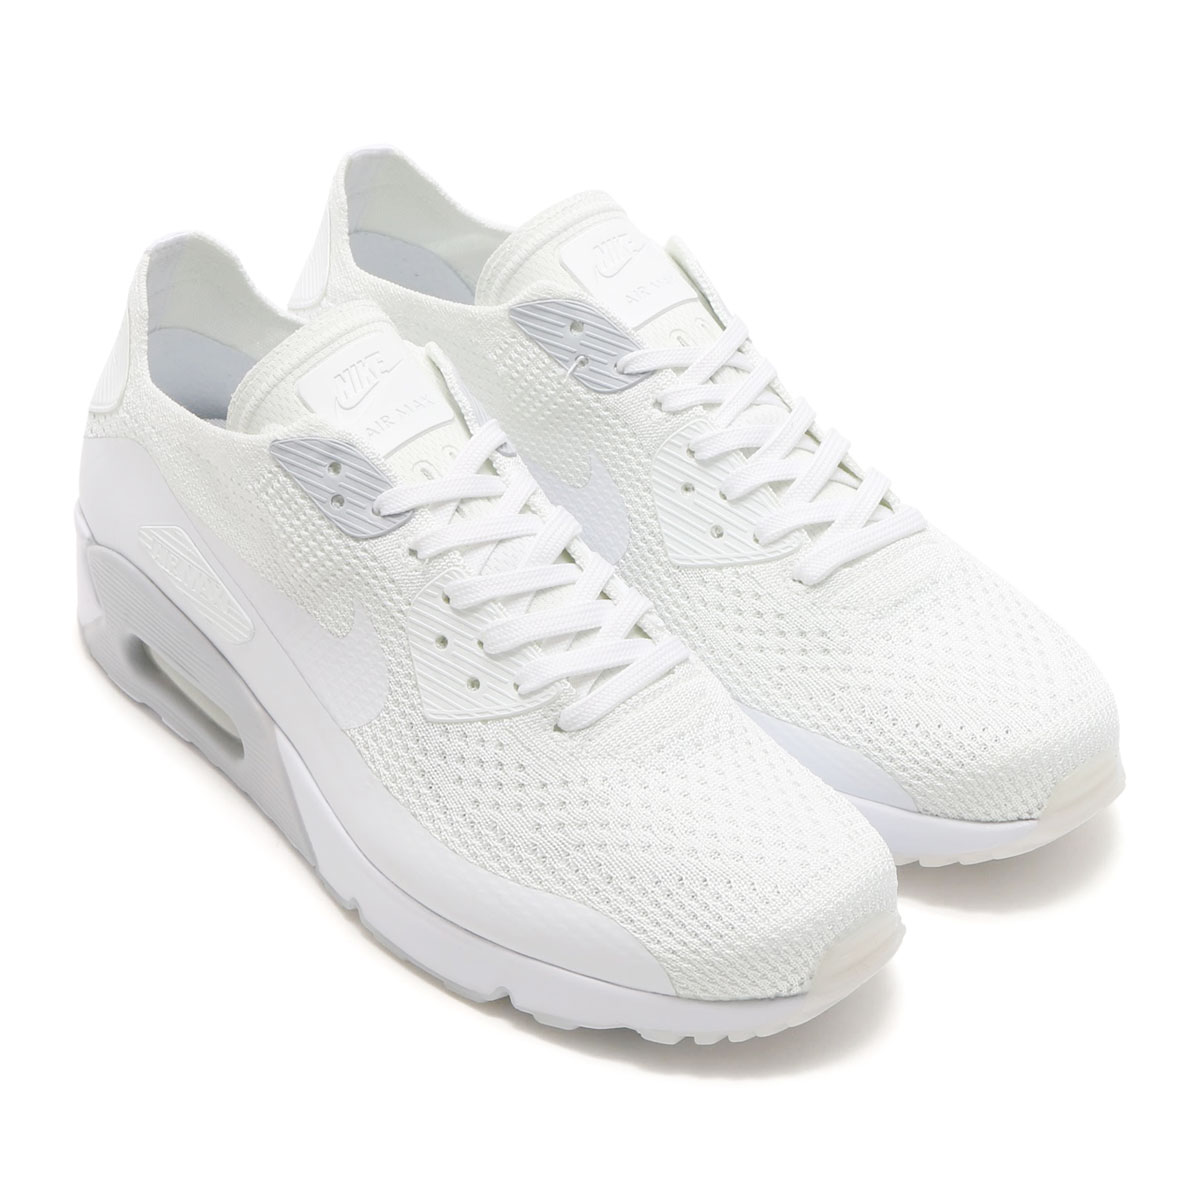 low priced 72c1a 86c45 nike air max flyknit white